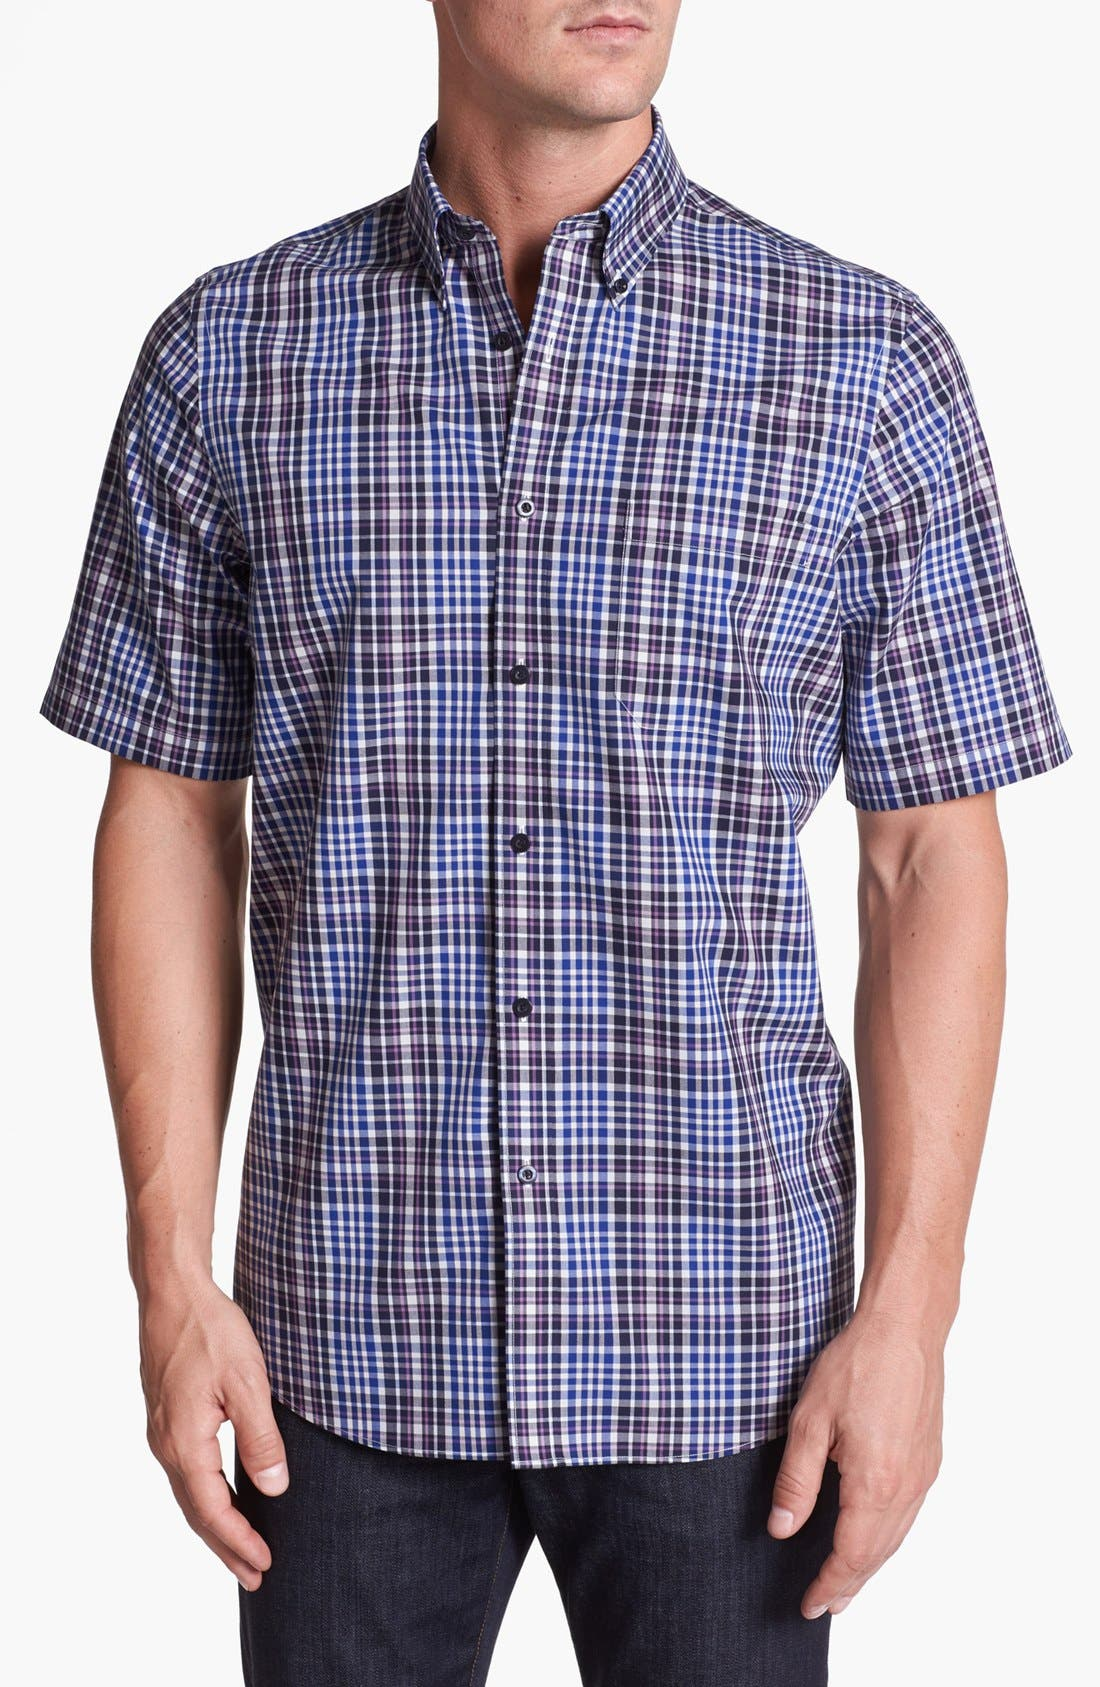 Alternate Image 1 Selected - Nordstrom Smartcare™ Regular Fit Poplin Sport Shirt